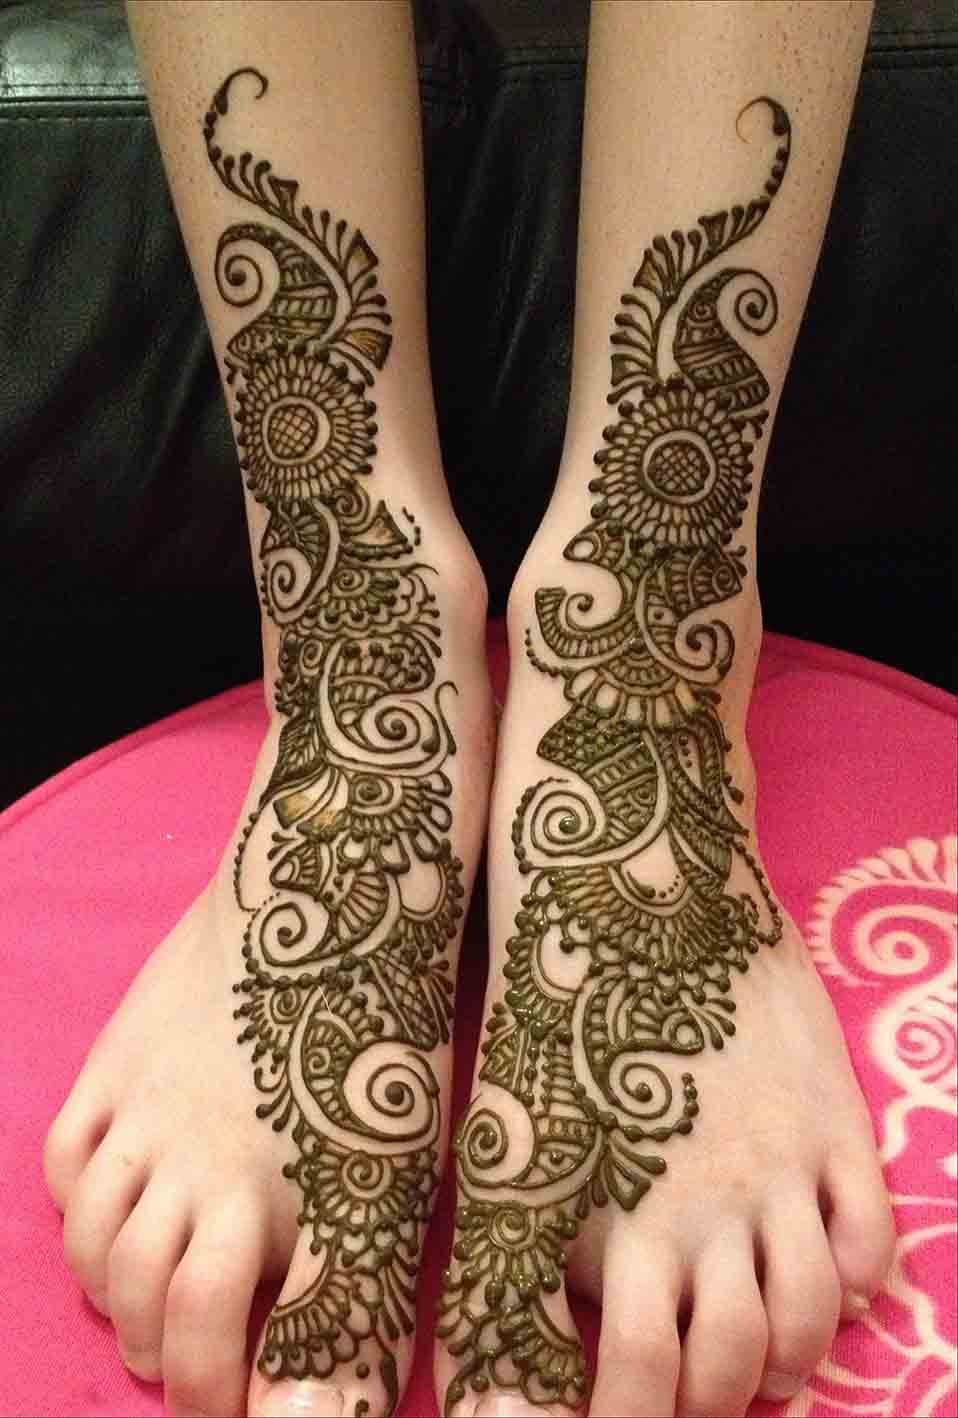 The best mehndi designs for hands livinghours - Simple Arabic Mehndi Designs For Legs